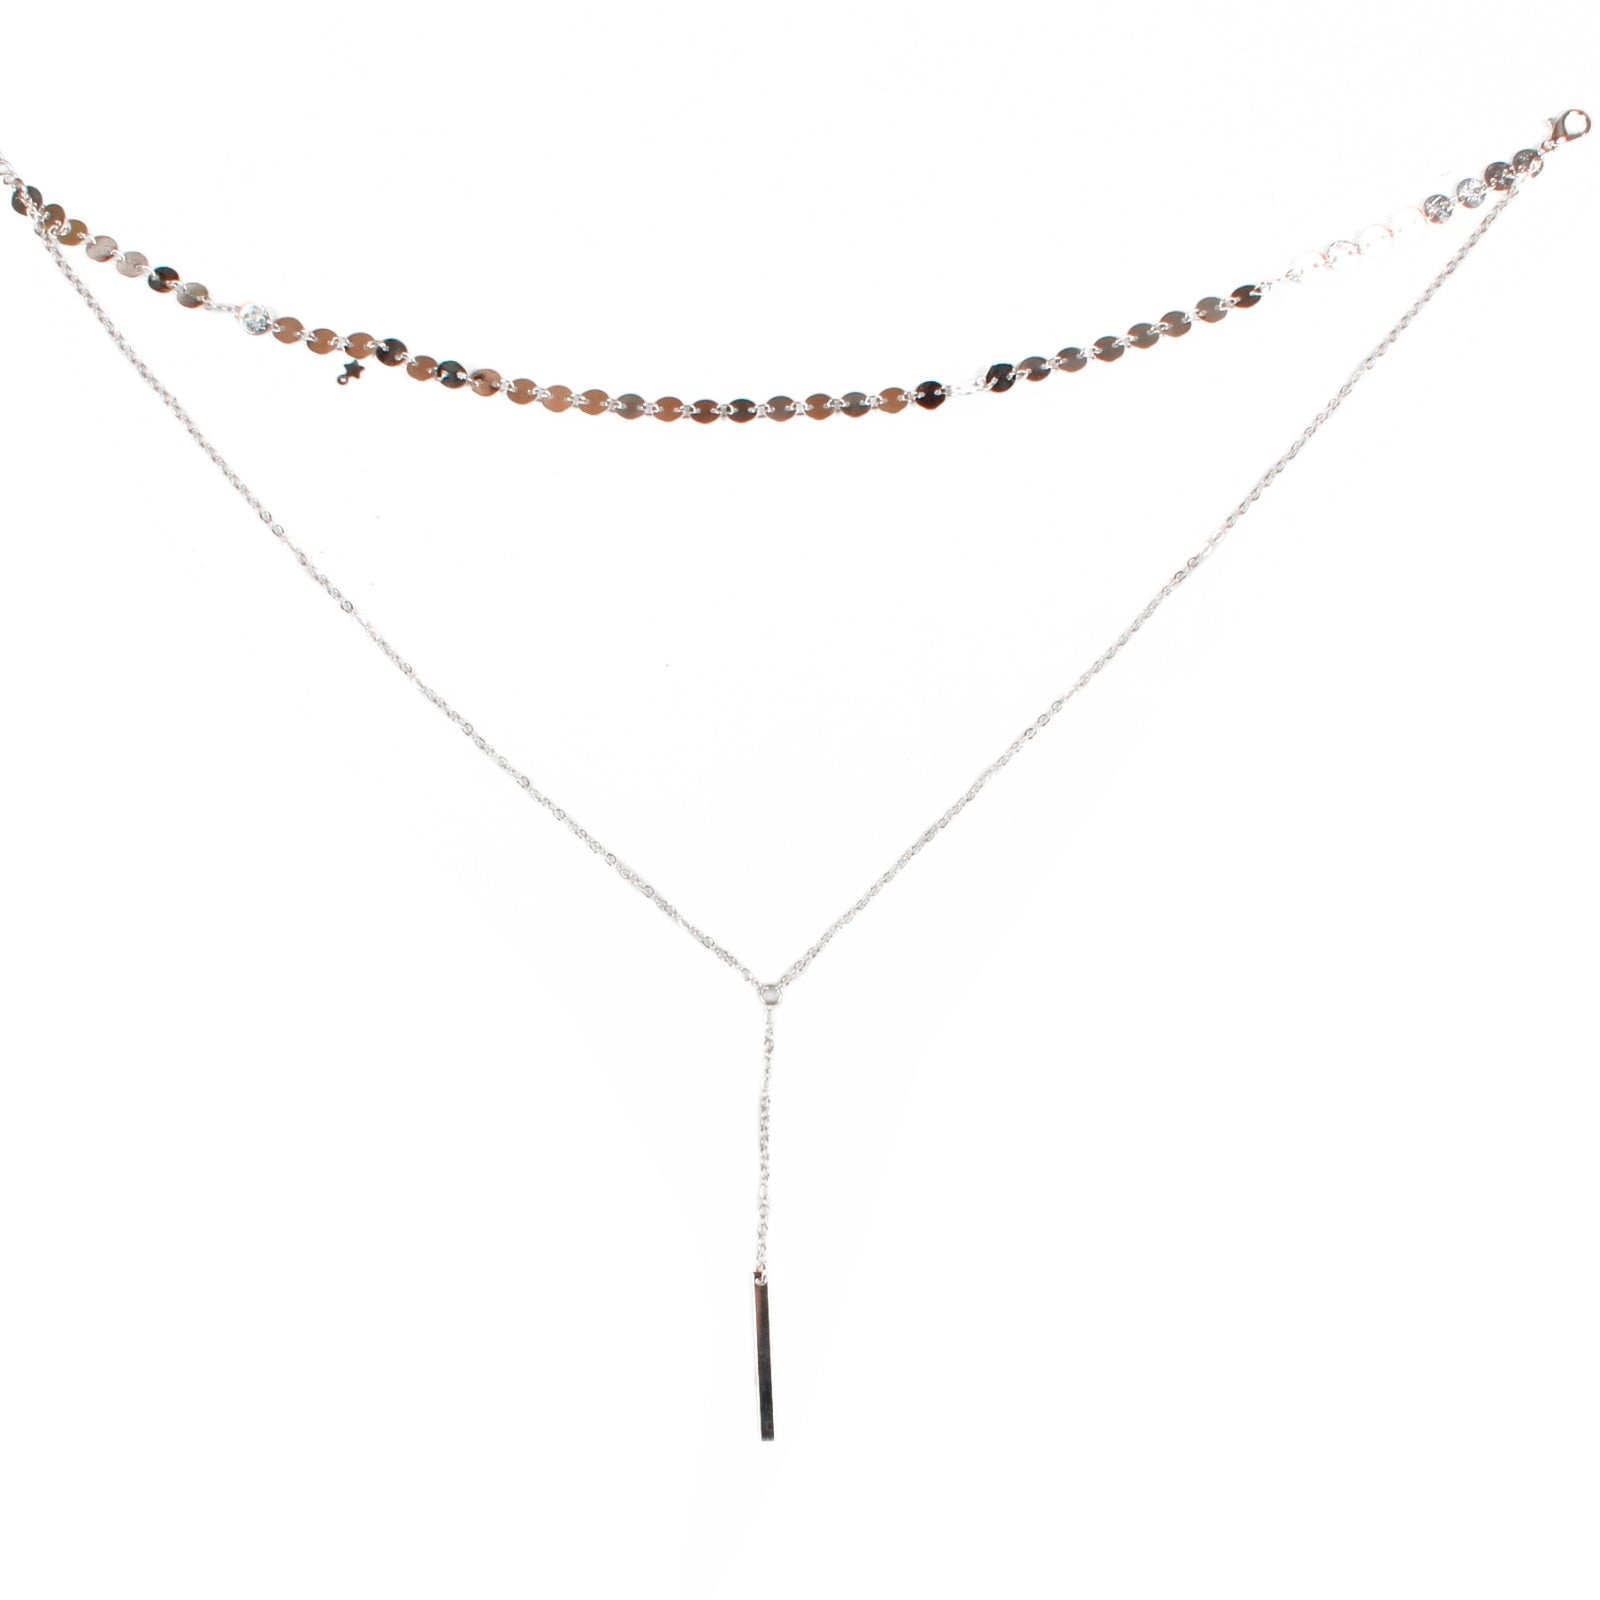 Simple Vertical Bar Necklace - Jewelry